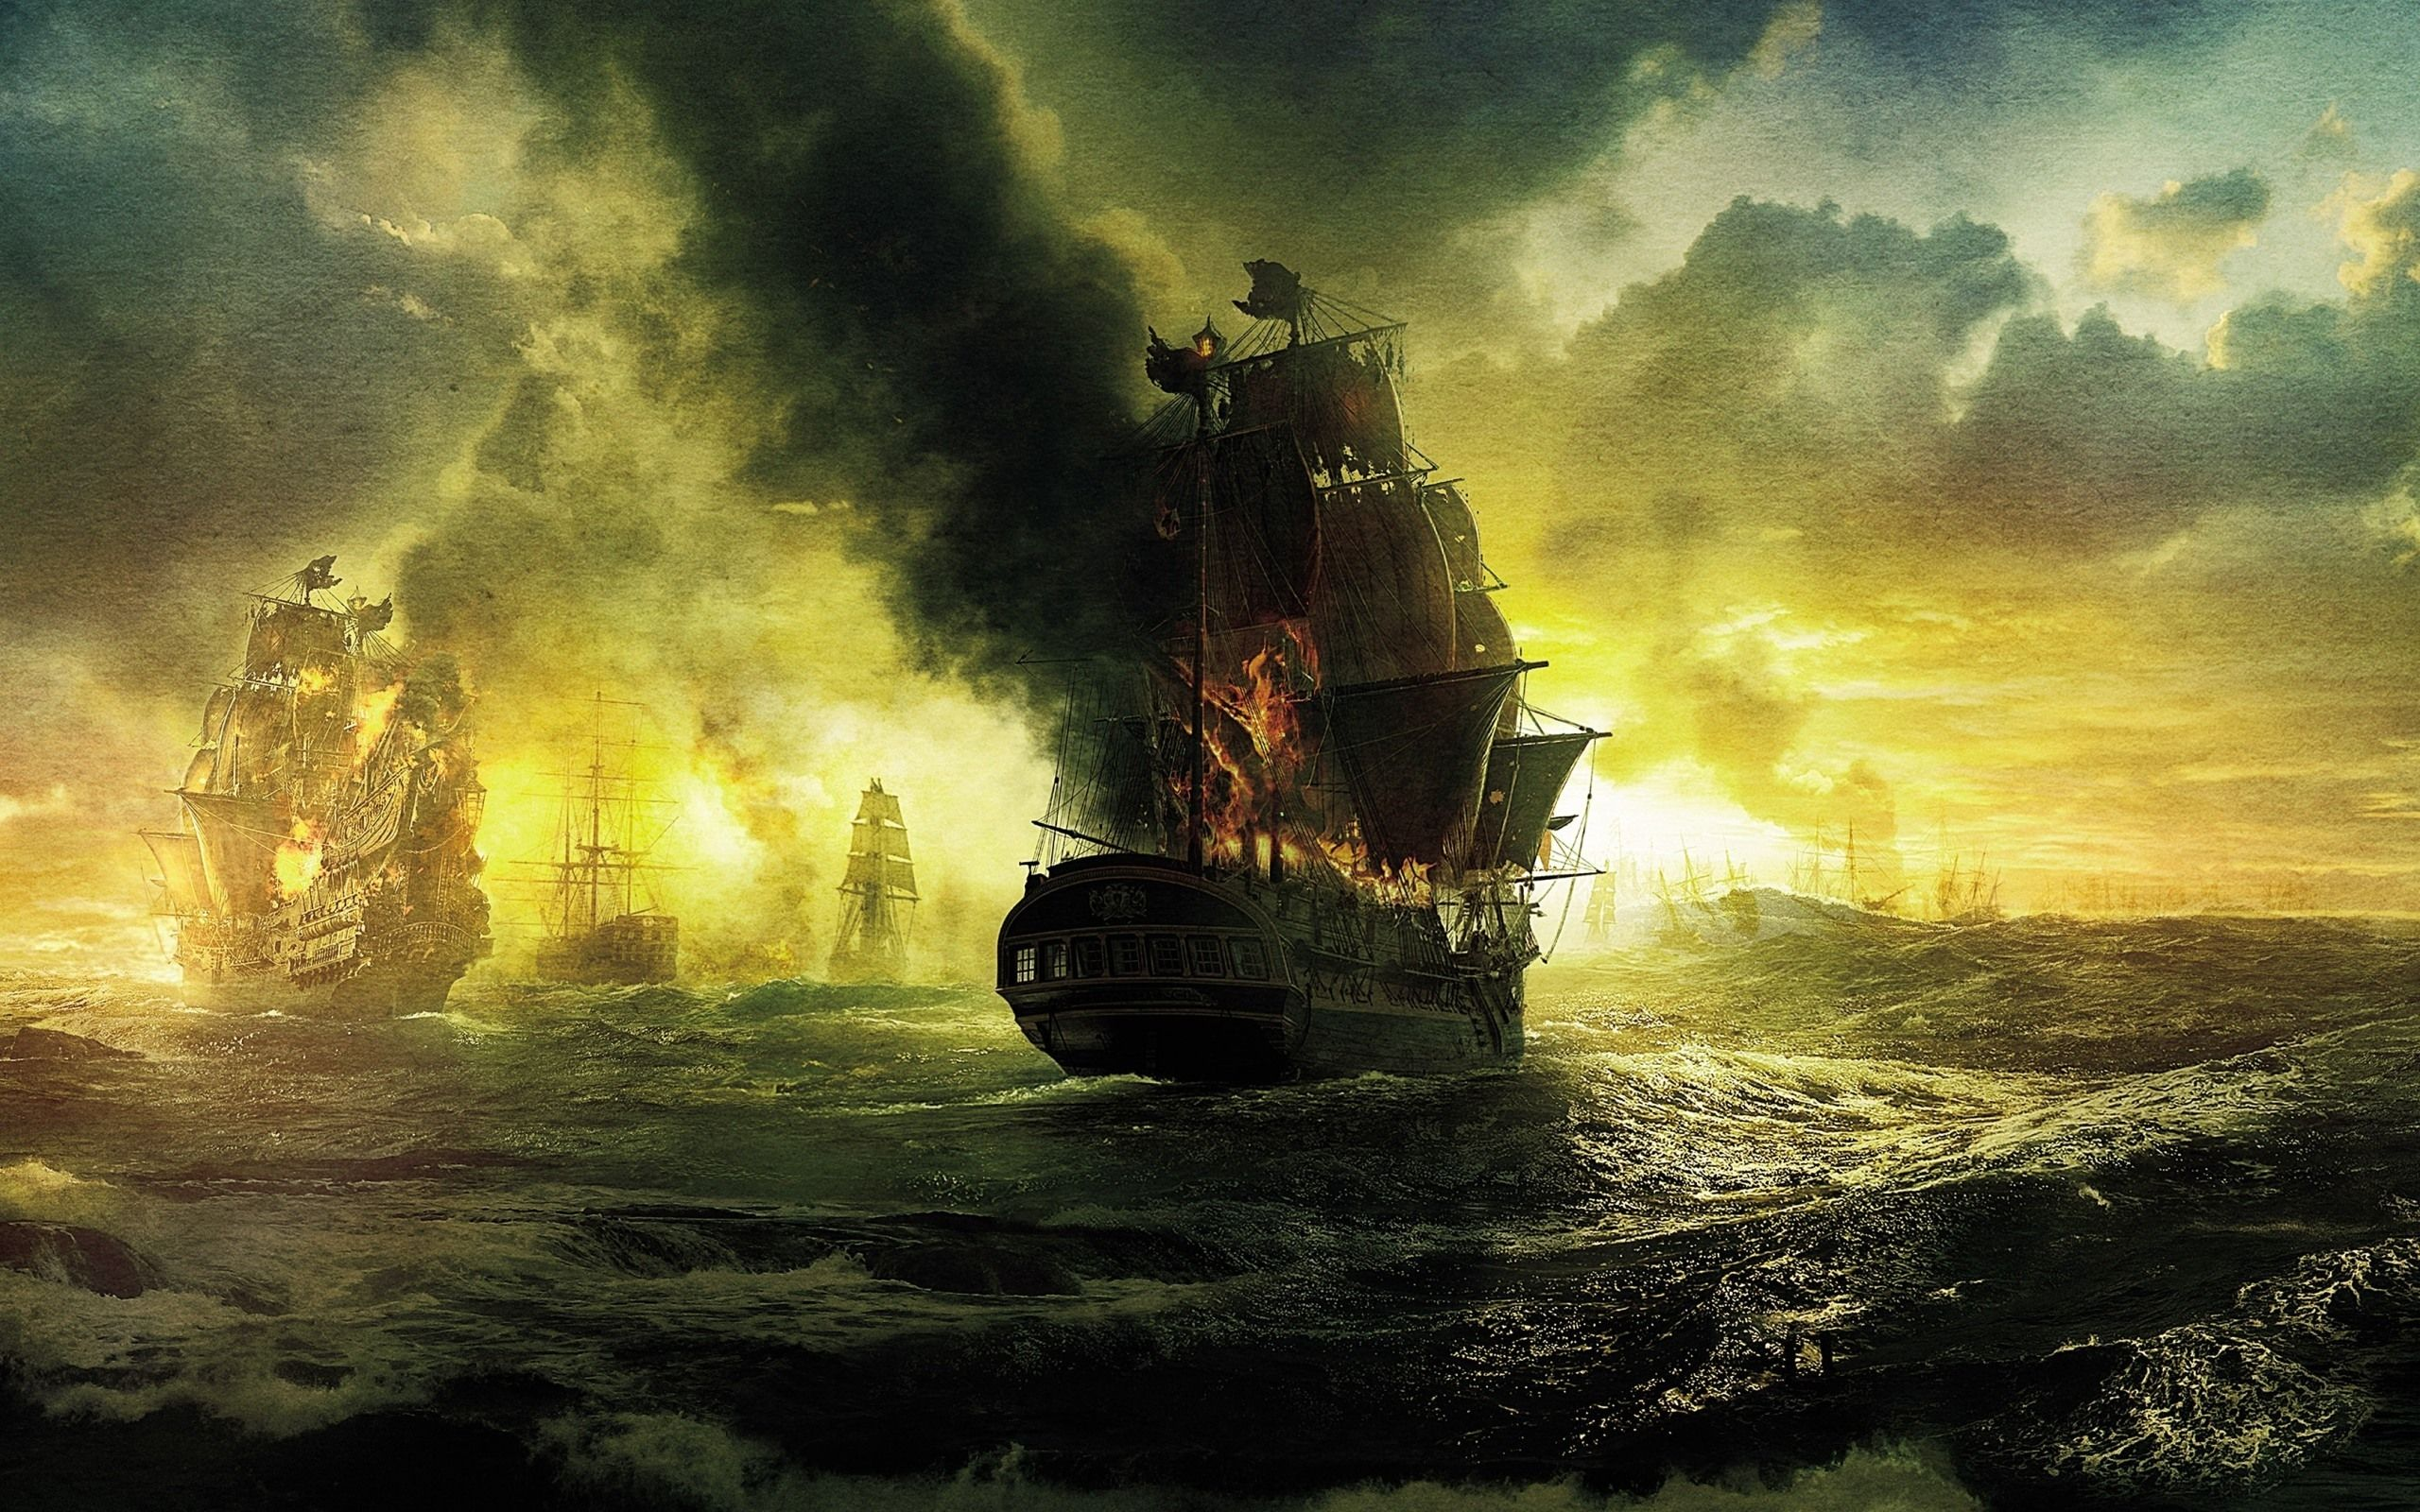 pirates of the caribbean hd wallpapers backgrounds | wallpapers